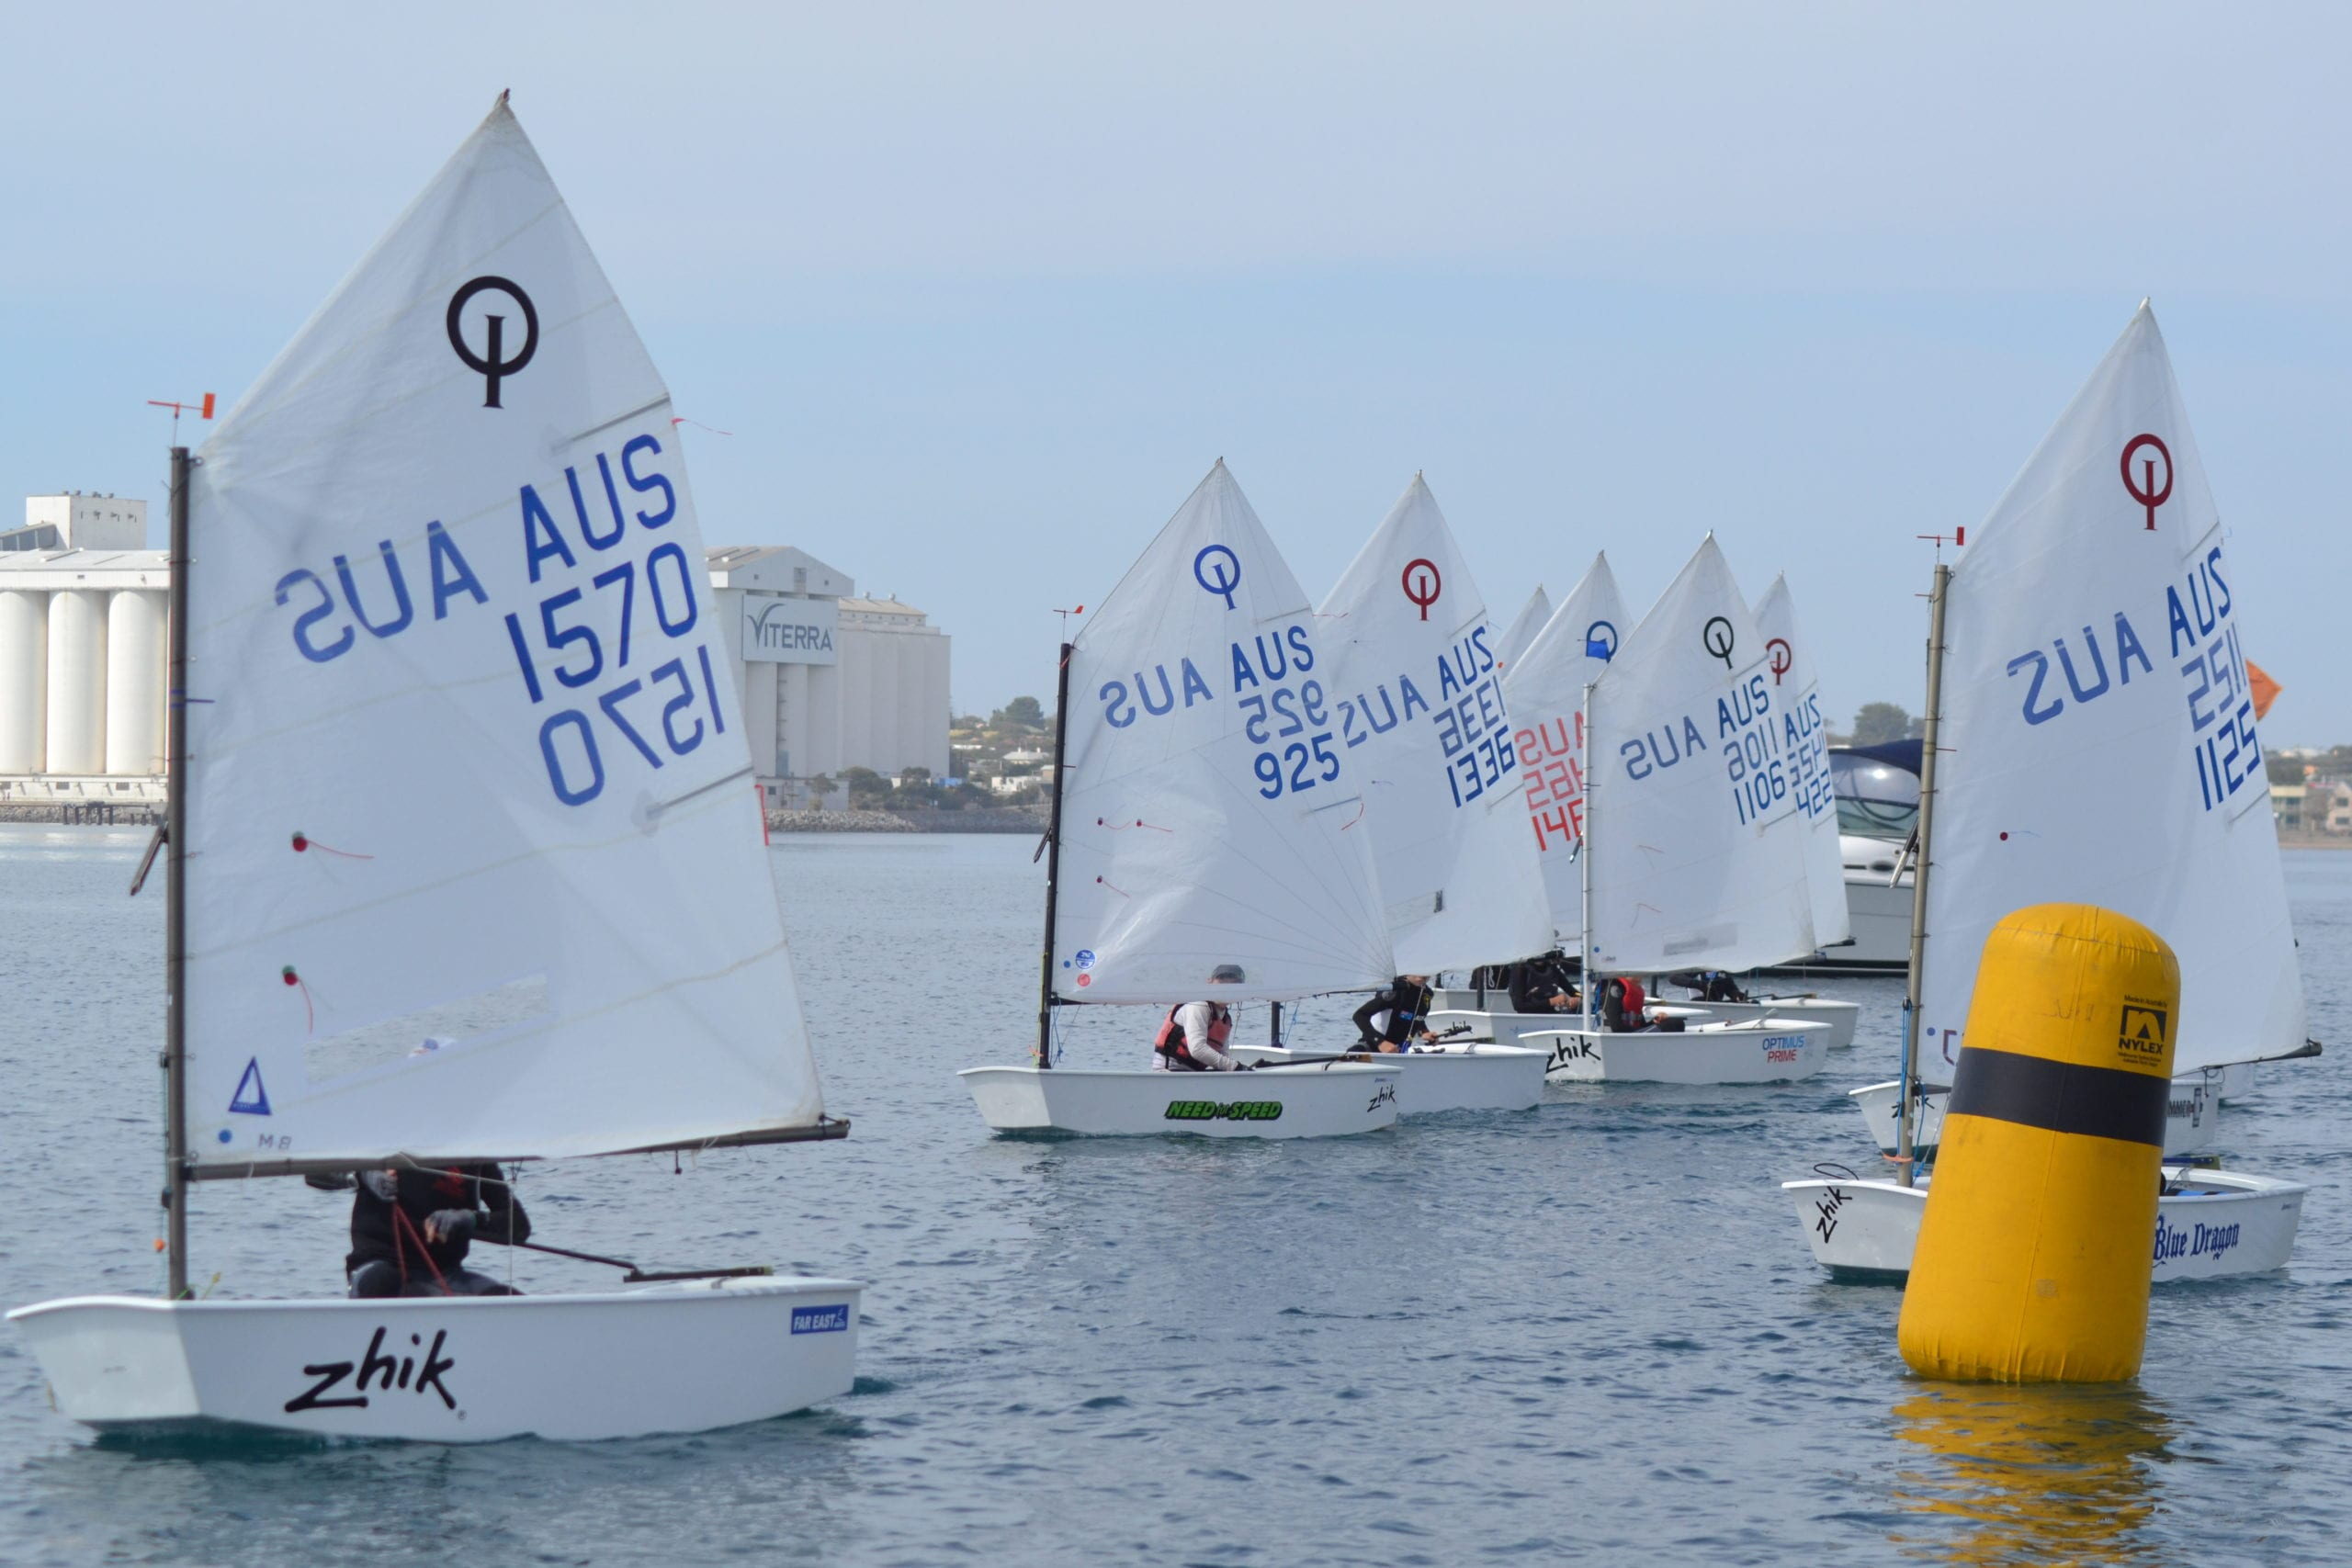 The optimist fleet off the start line at last year's Youth Tri Series event in Port Lincoln.